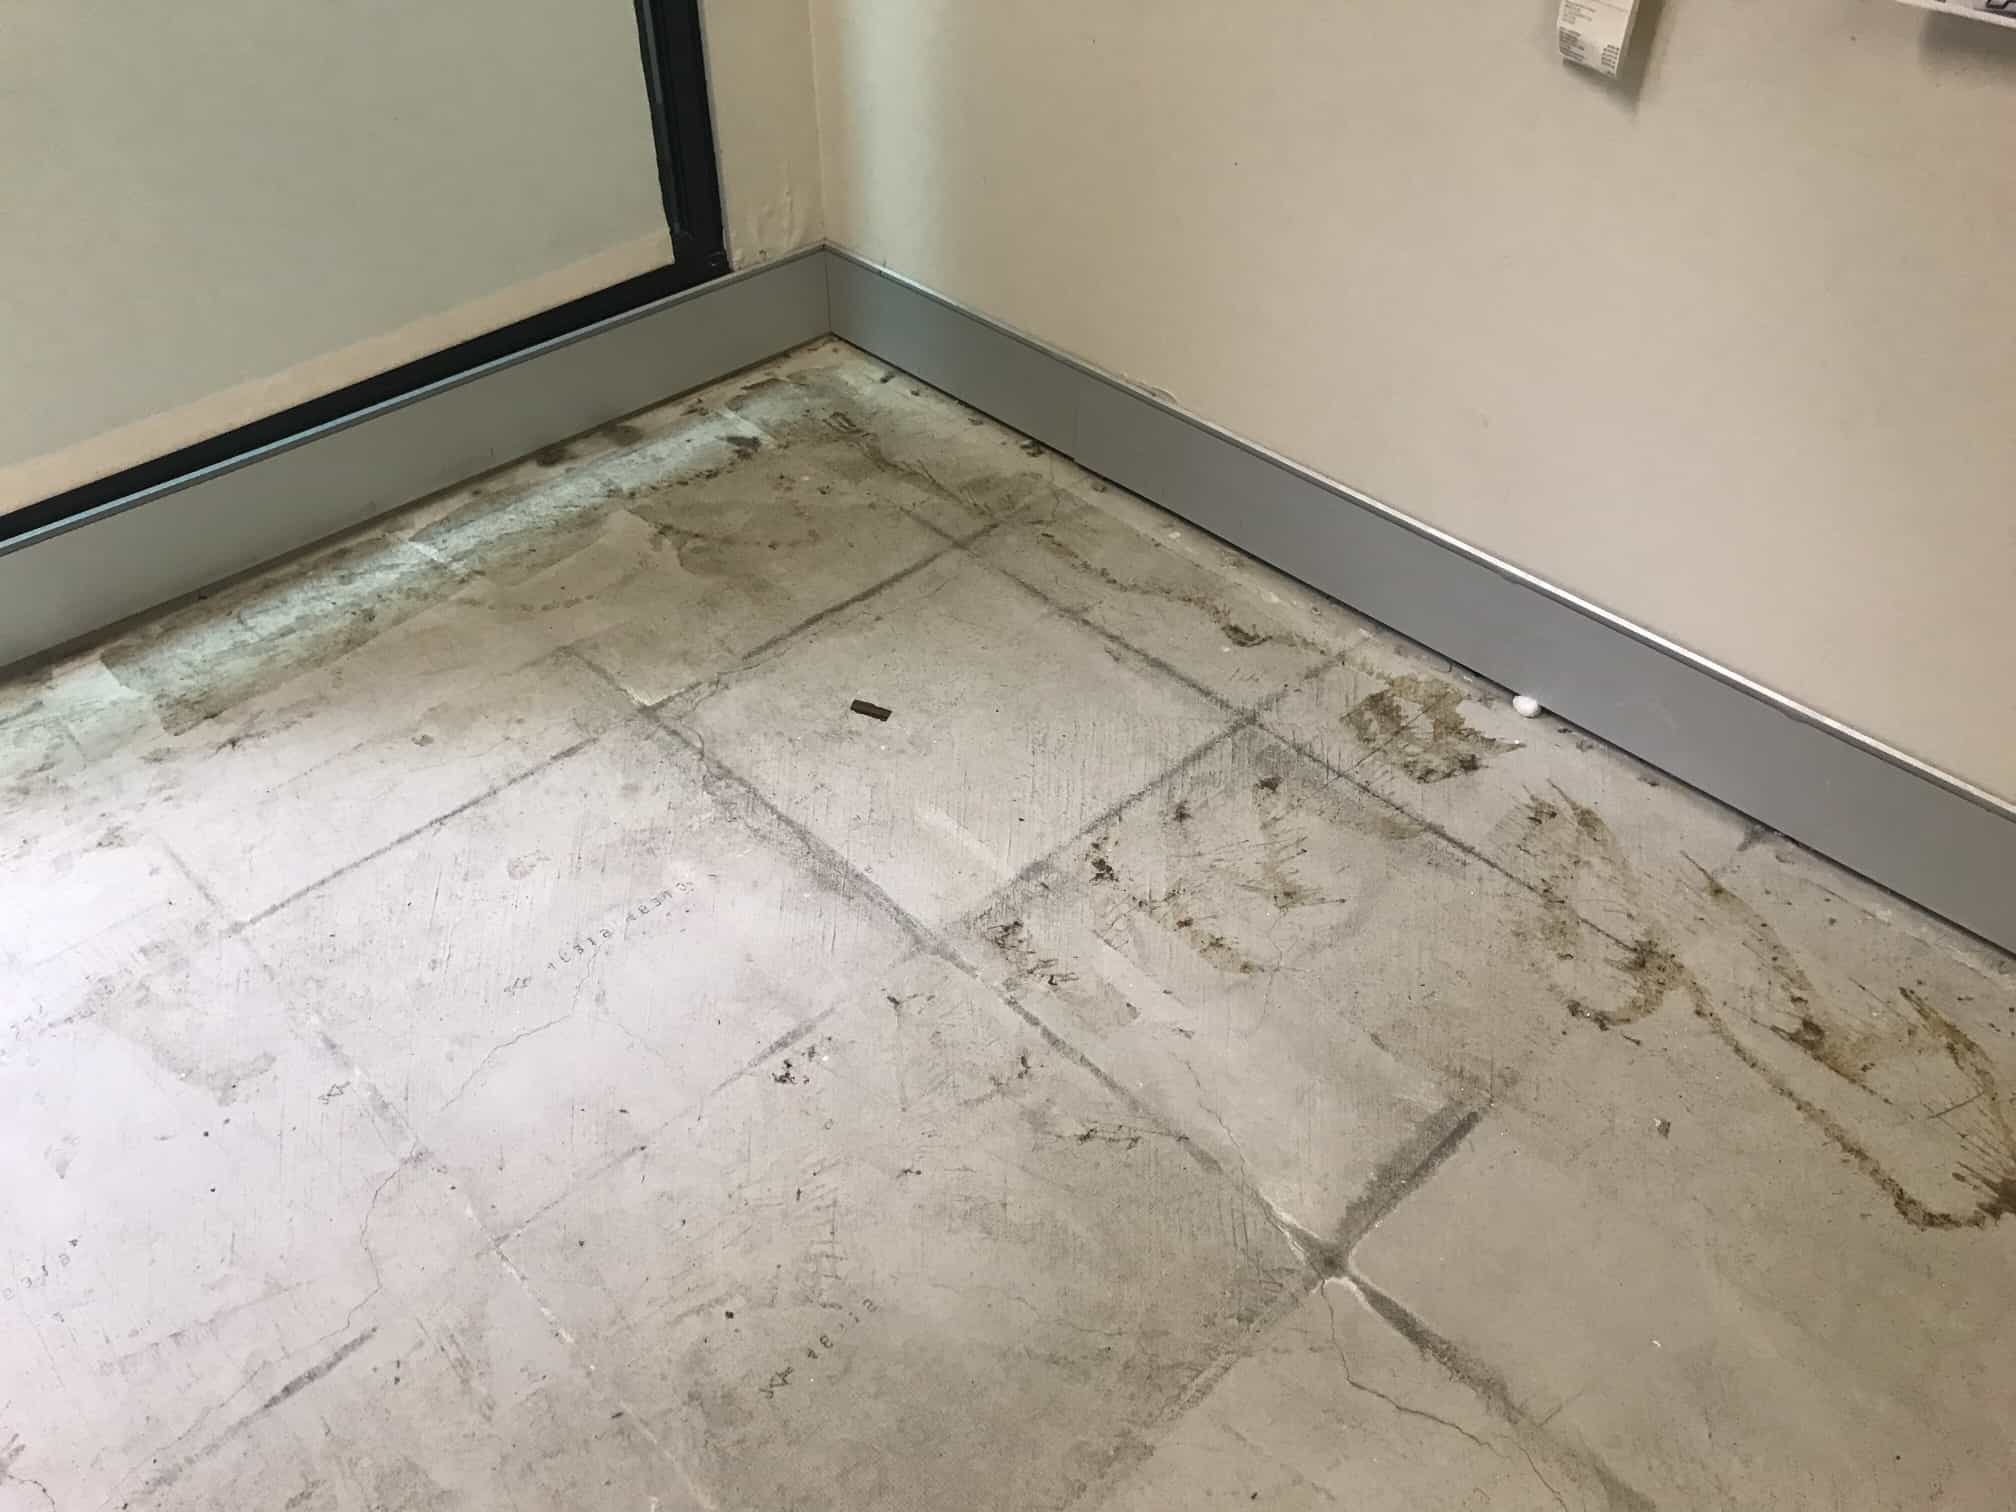 mould cleaned off of floor